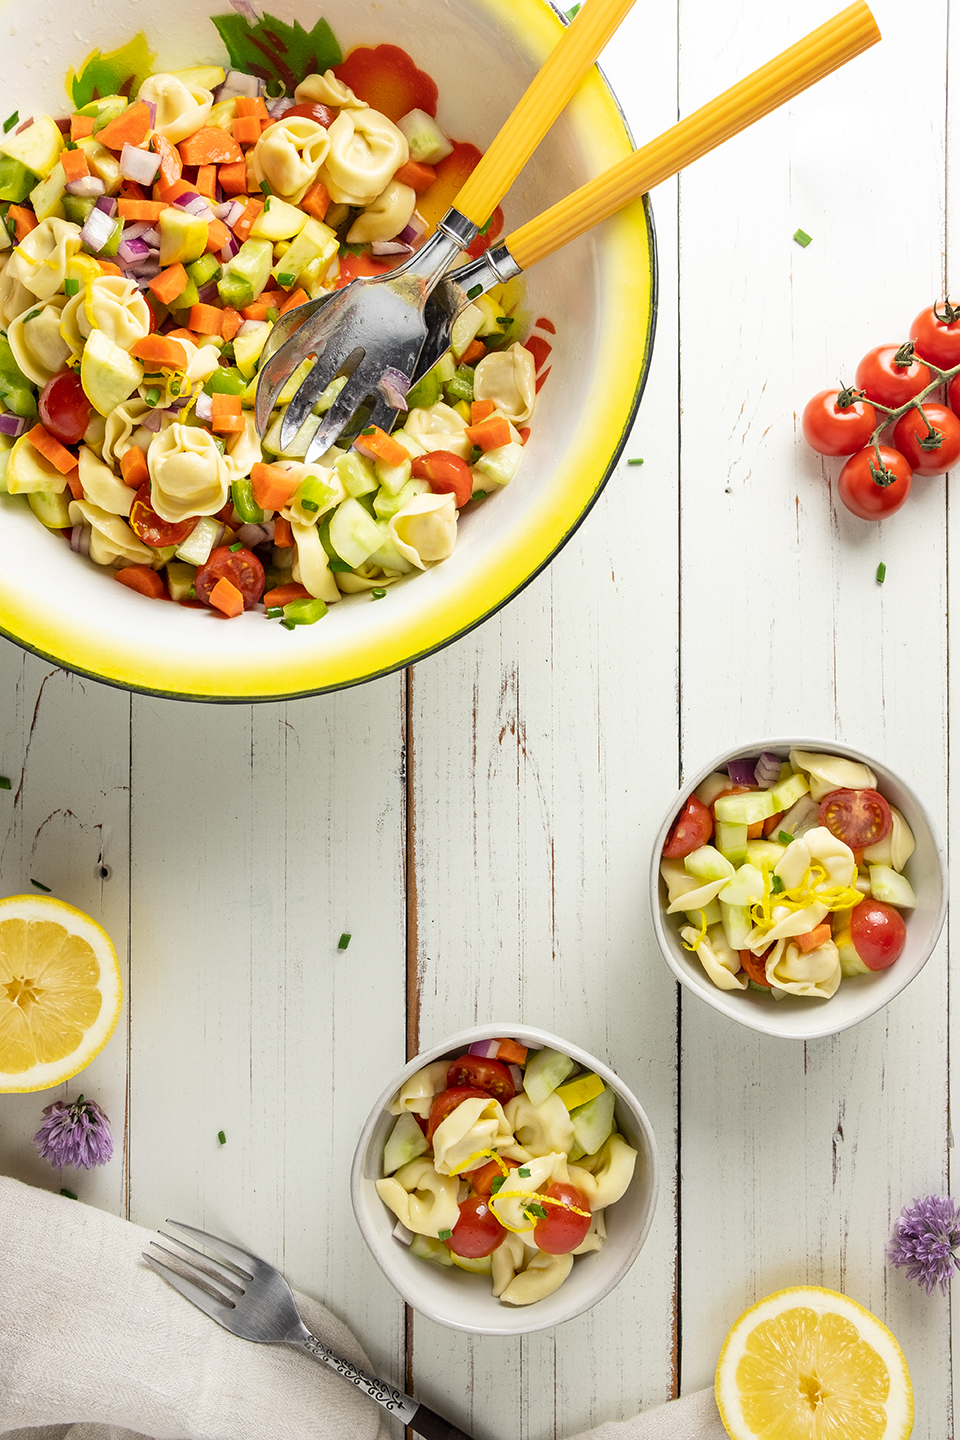 JodiLoves_Healthy-Cheese-Tortellini-Salad-portions.jpg